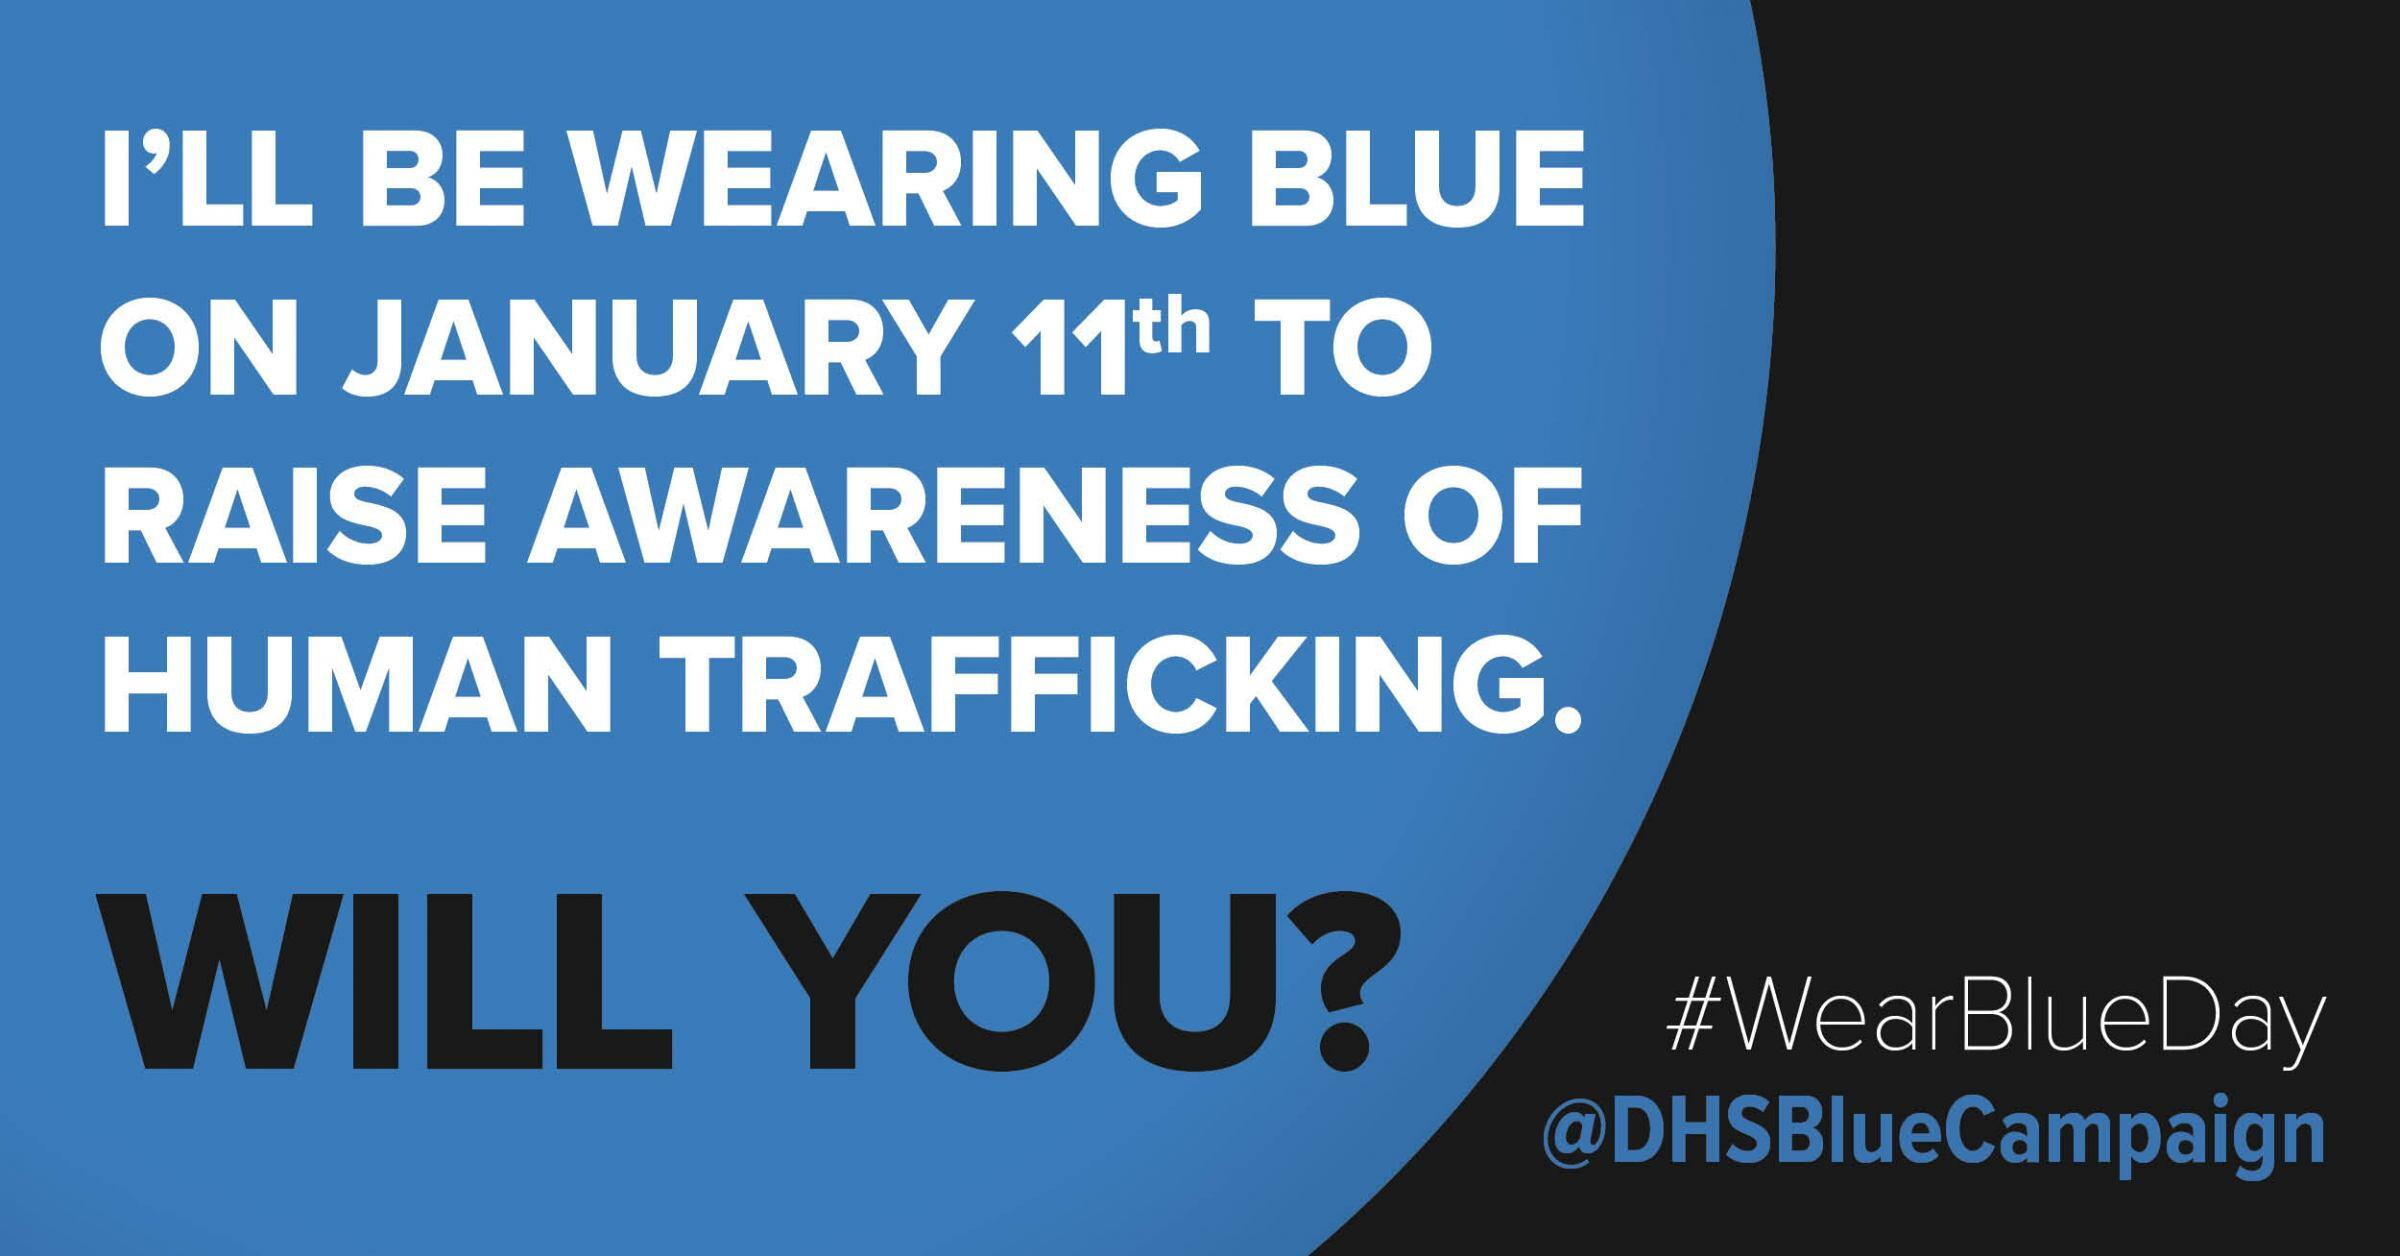 I'll be wearing blue on January 11th to raise awareness of human trafficking. Will you? #WearBlueDay @DHSBlueCampaign